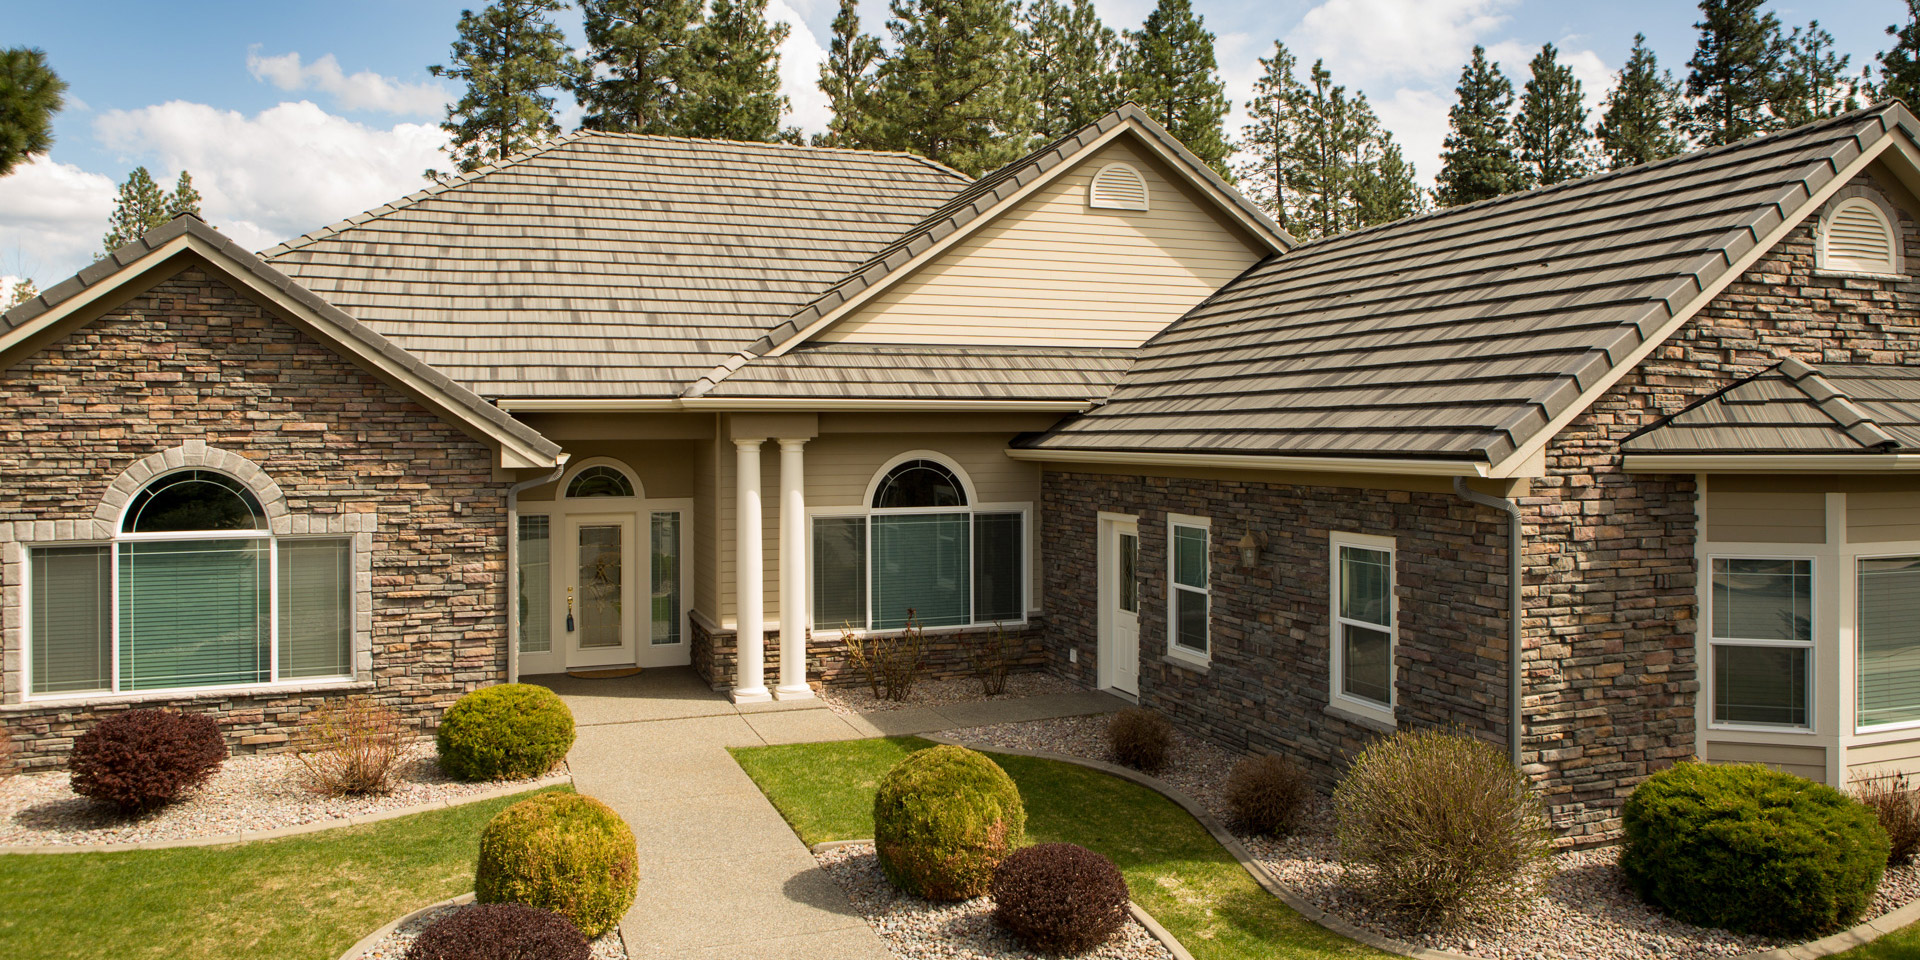 The Highlands Highland Park Golf Course Area Homes For Sale In Post Falls Id 83854